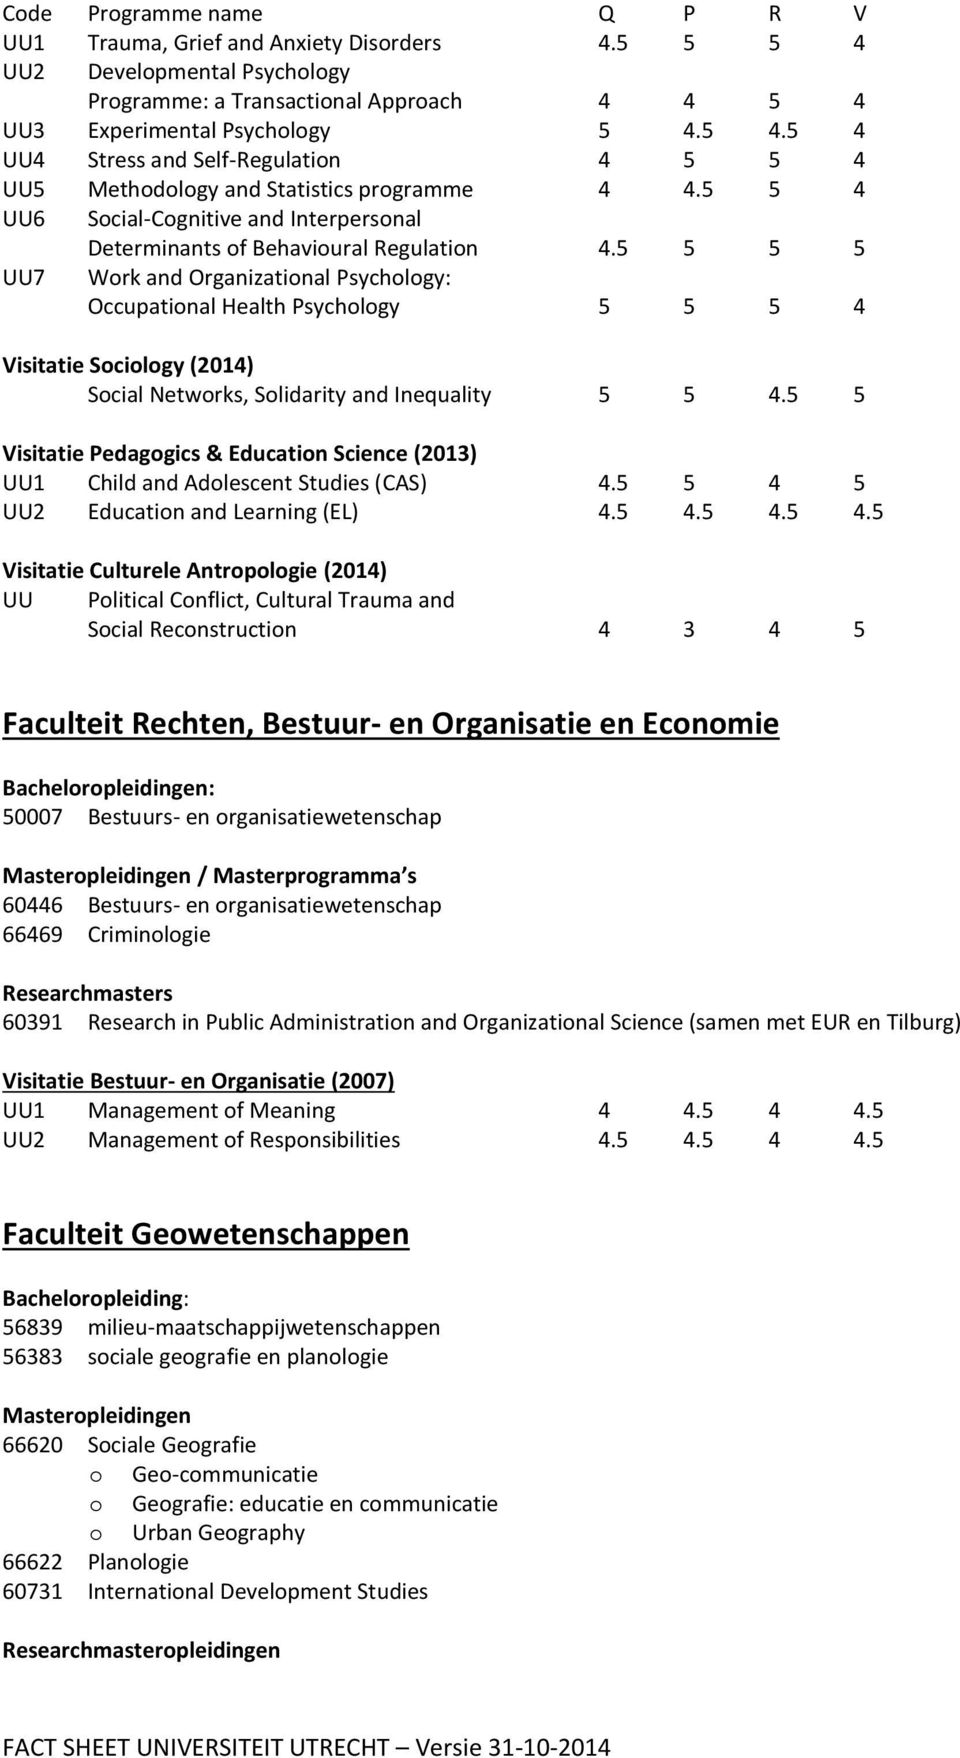 5 5 5 5 UU7 Work and Organizational Psychology: Occupational Health Psychology 5 5 5 4 Visitatie Sociology (2014) Social Networks, Solidarity and Inequality 5 5 4.